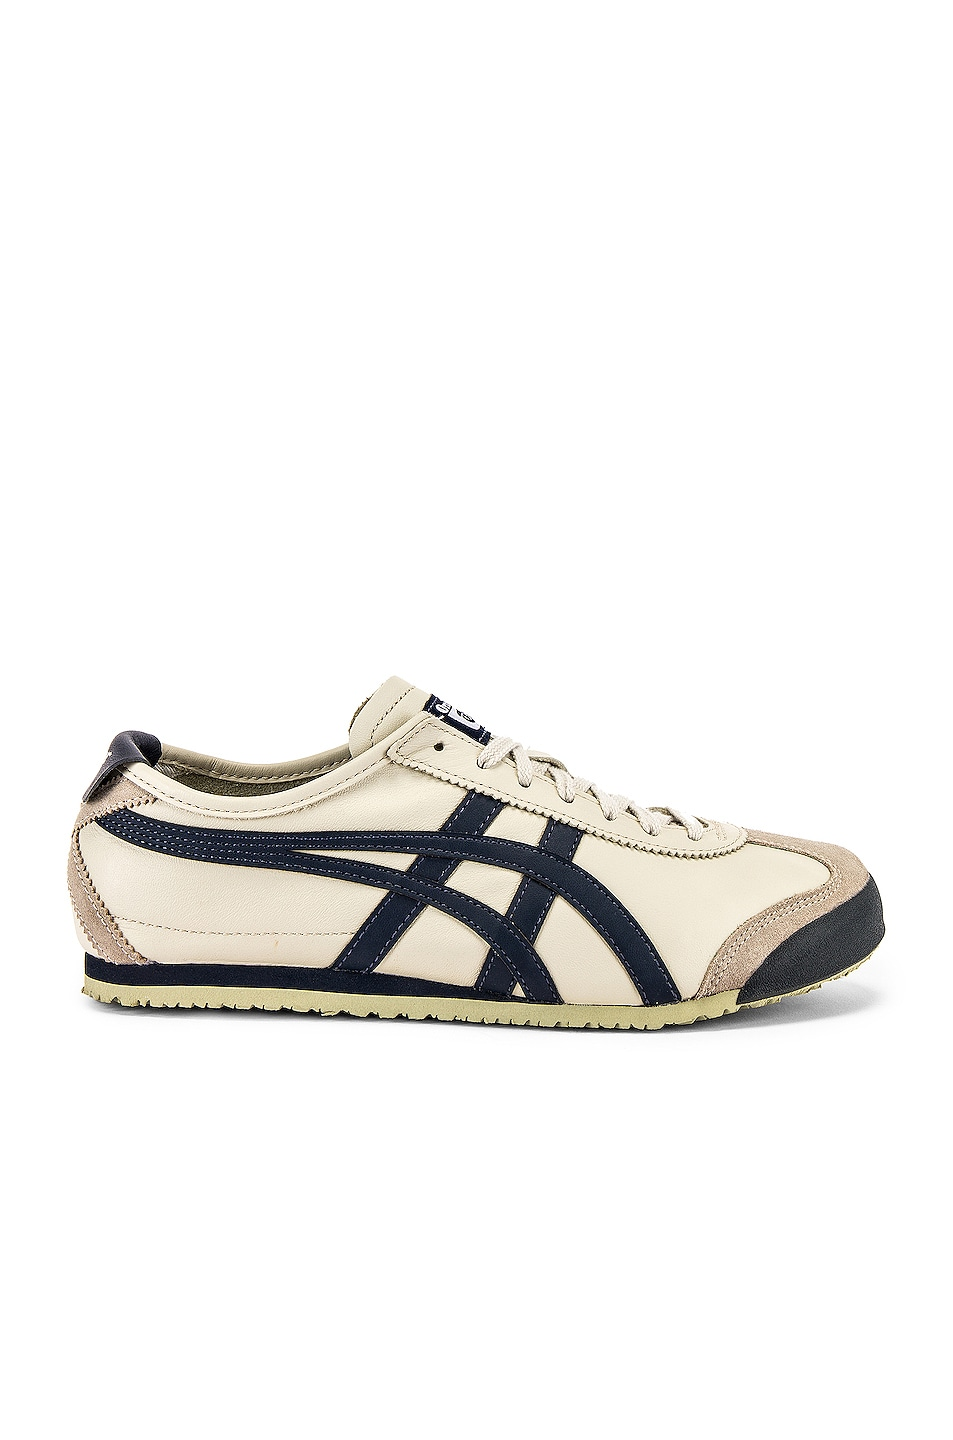 Image 2 of Onitsuka Tiger Mexico 66 in Birch & Indian Ink & Latte